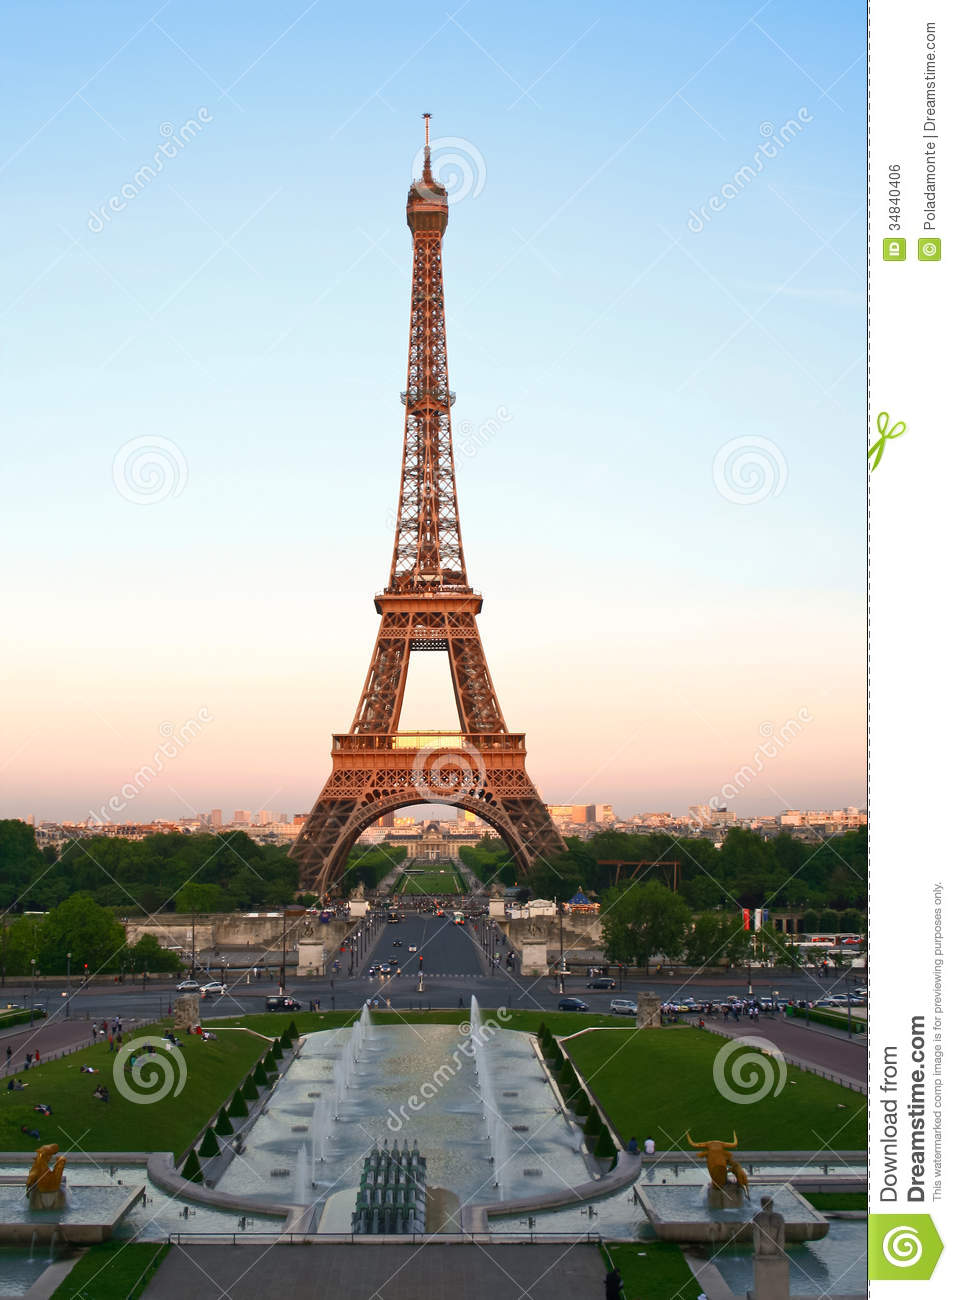 Eiffel Tower At Dusk Paris France Royalty Free Stock Image Image 34840406